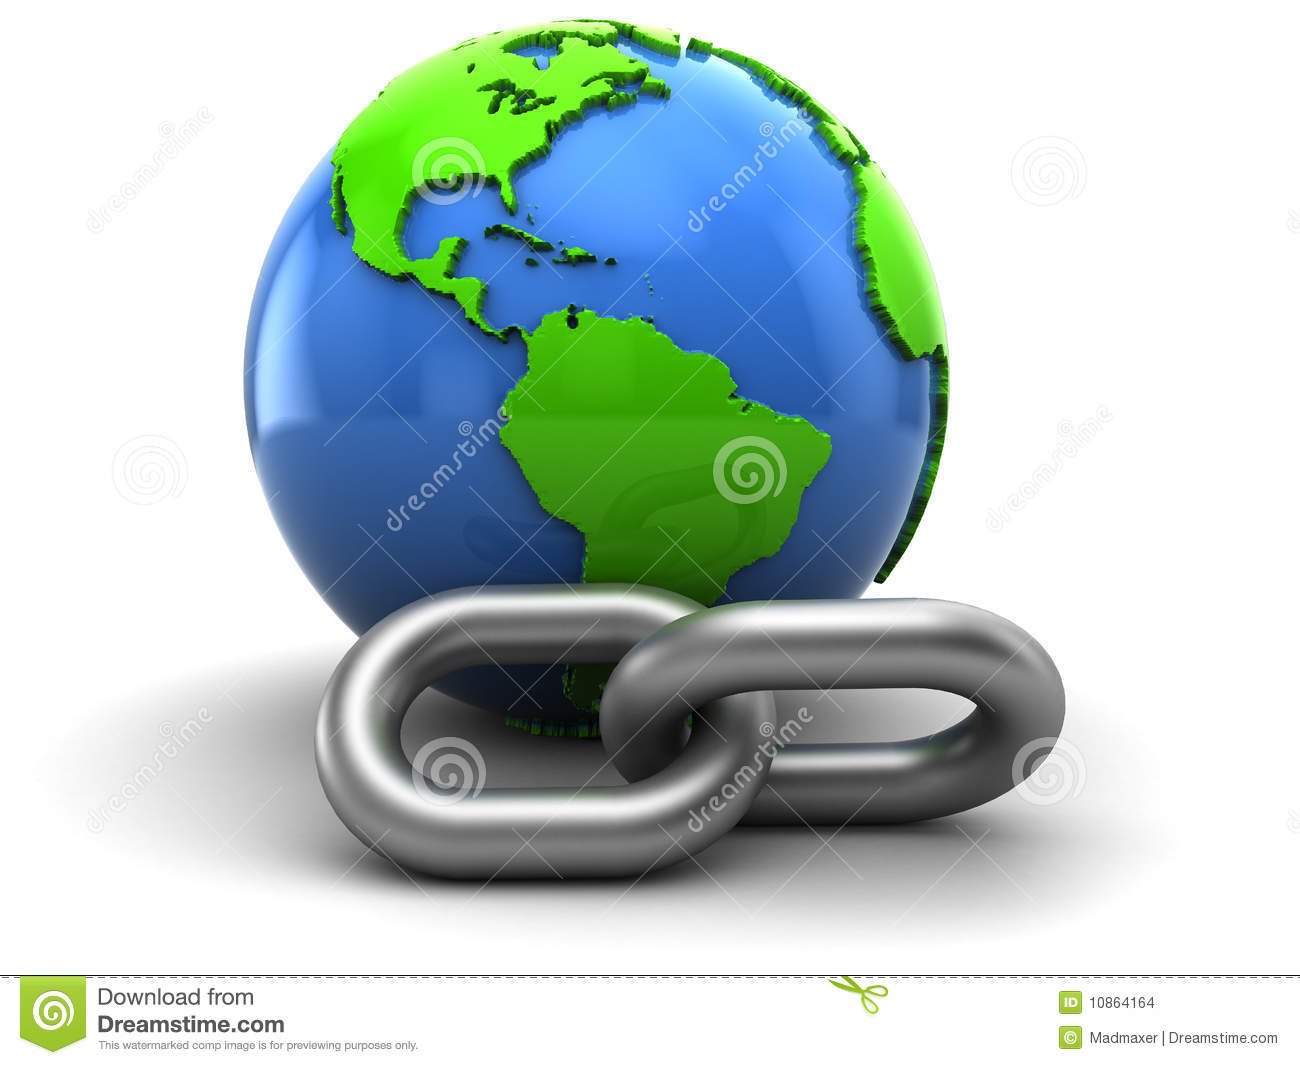 Abstract 3d illustration of earth and chain, hyperlink symbol.